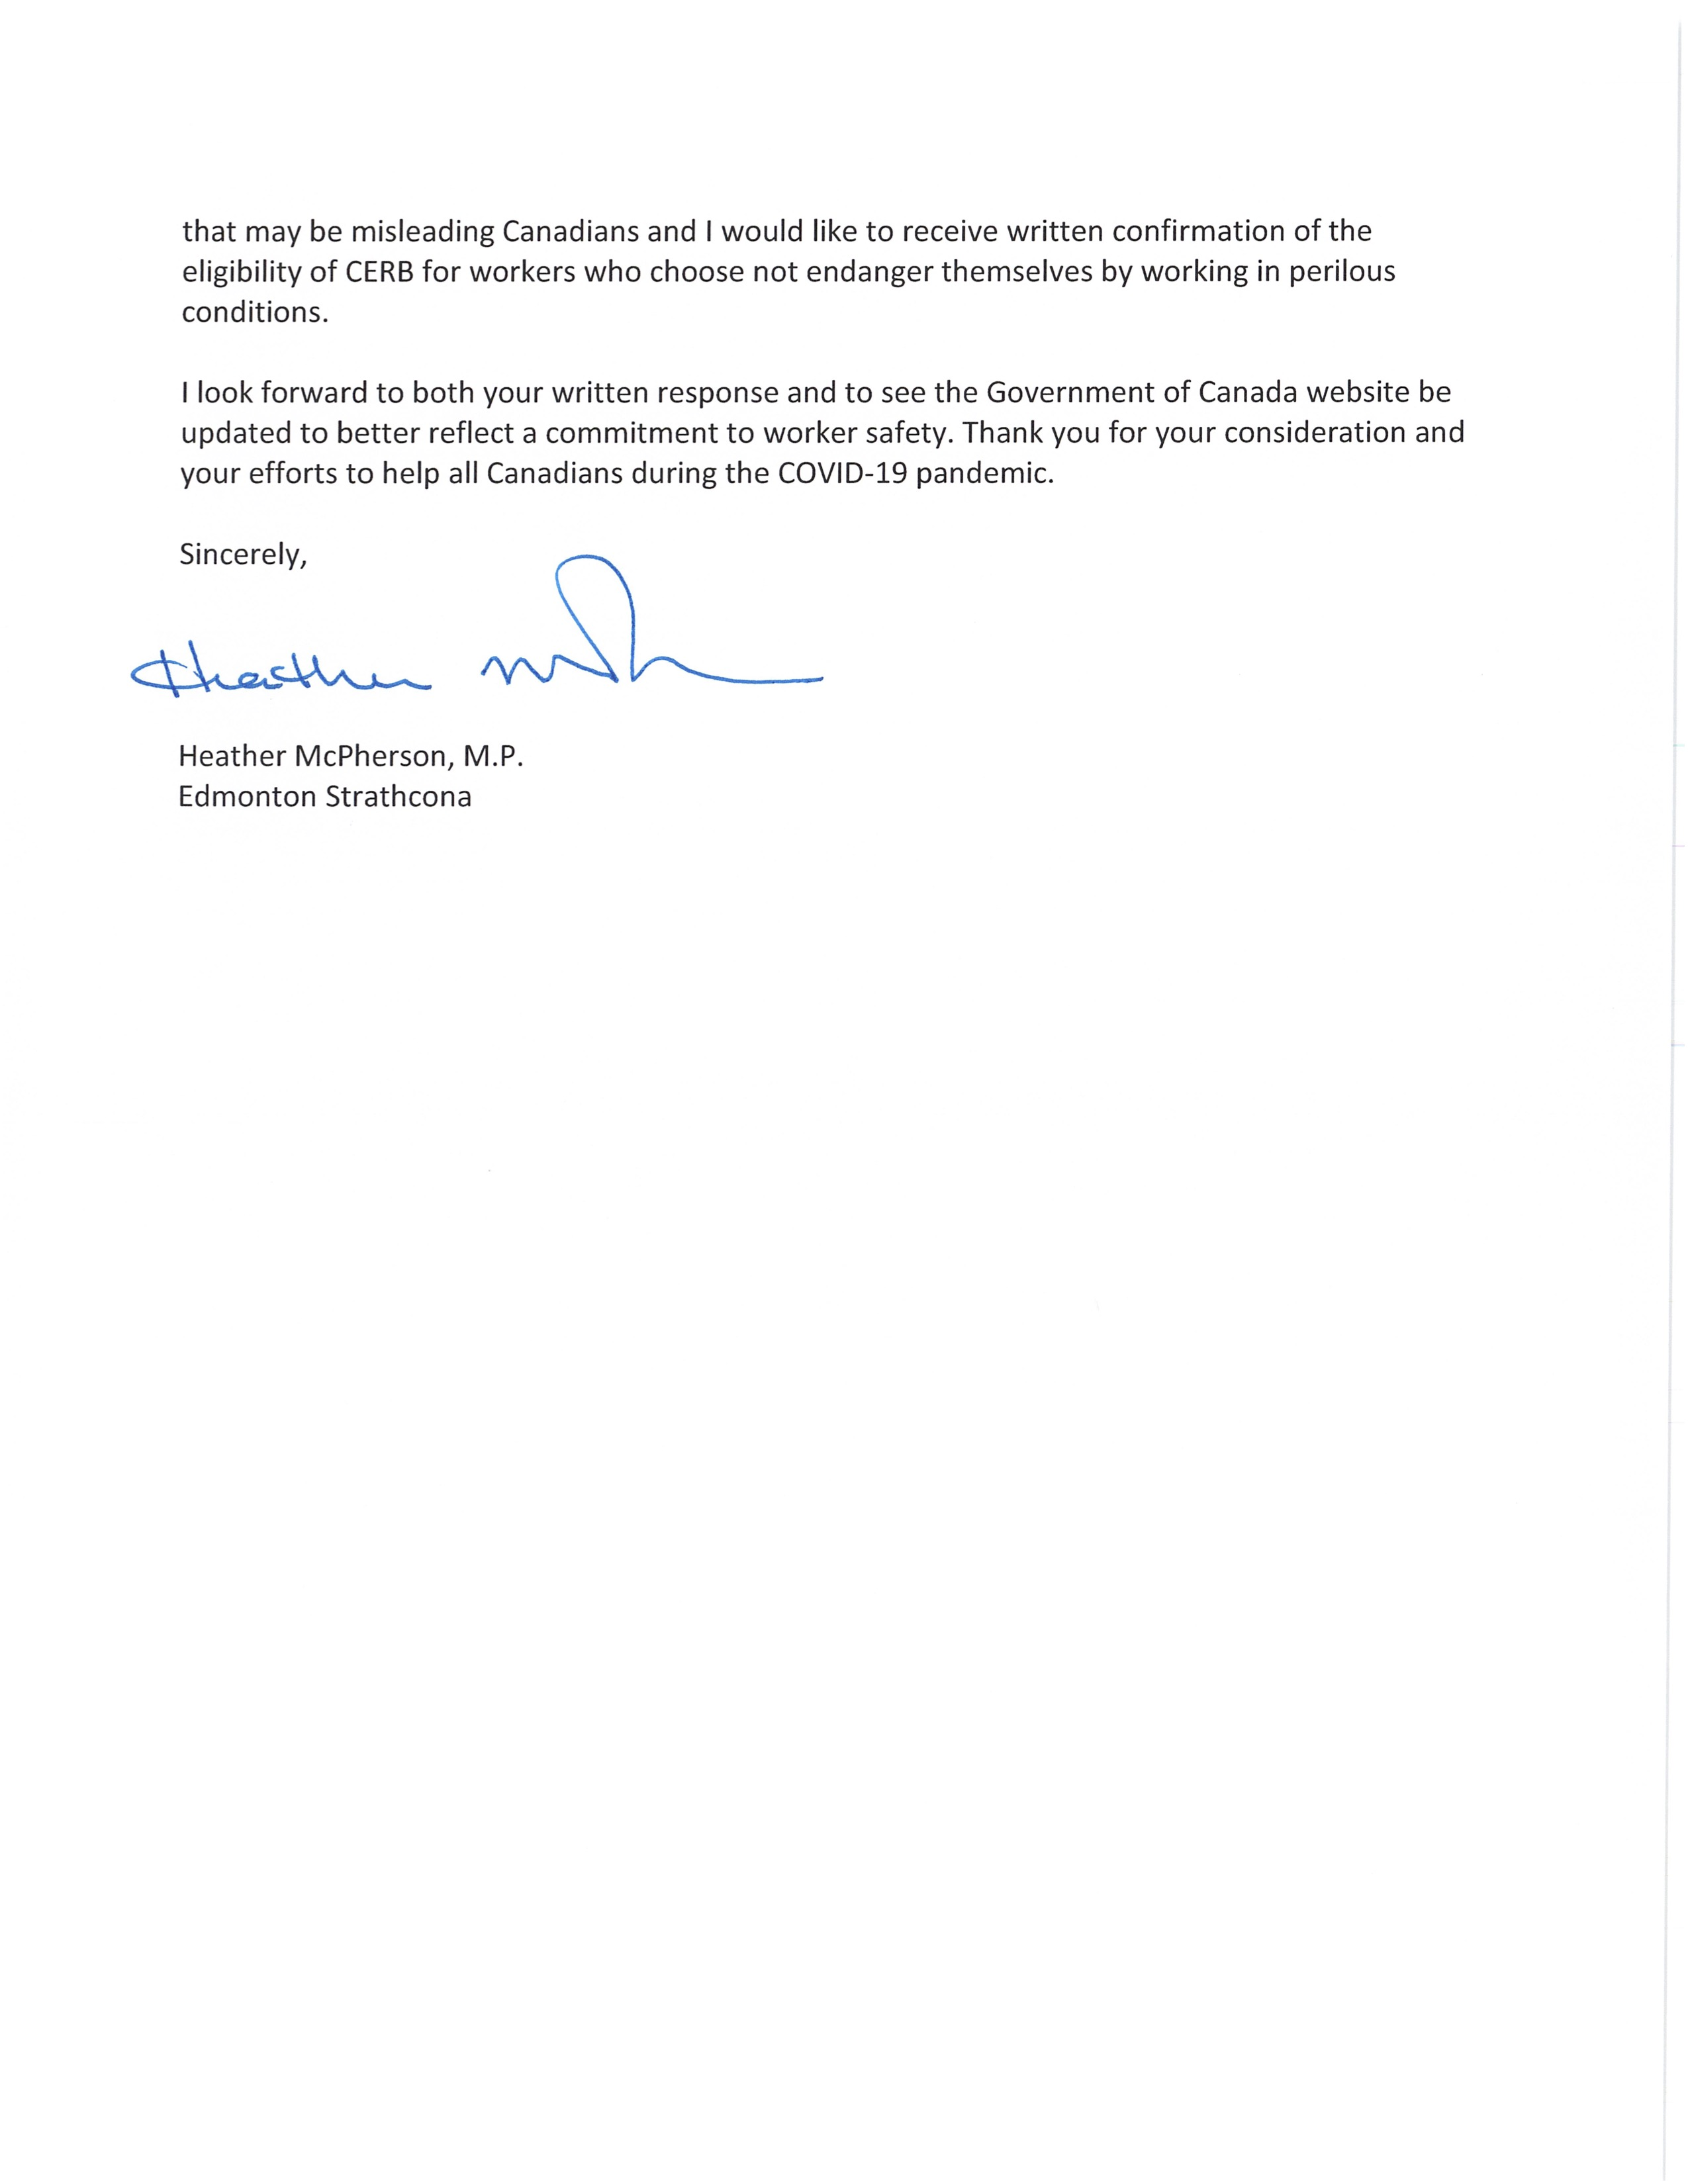 Letter to Ministers Freeland and Qualtrough Page 2